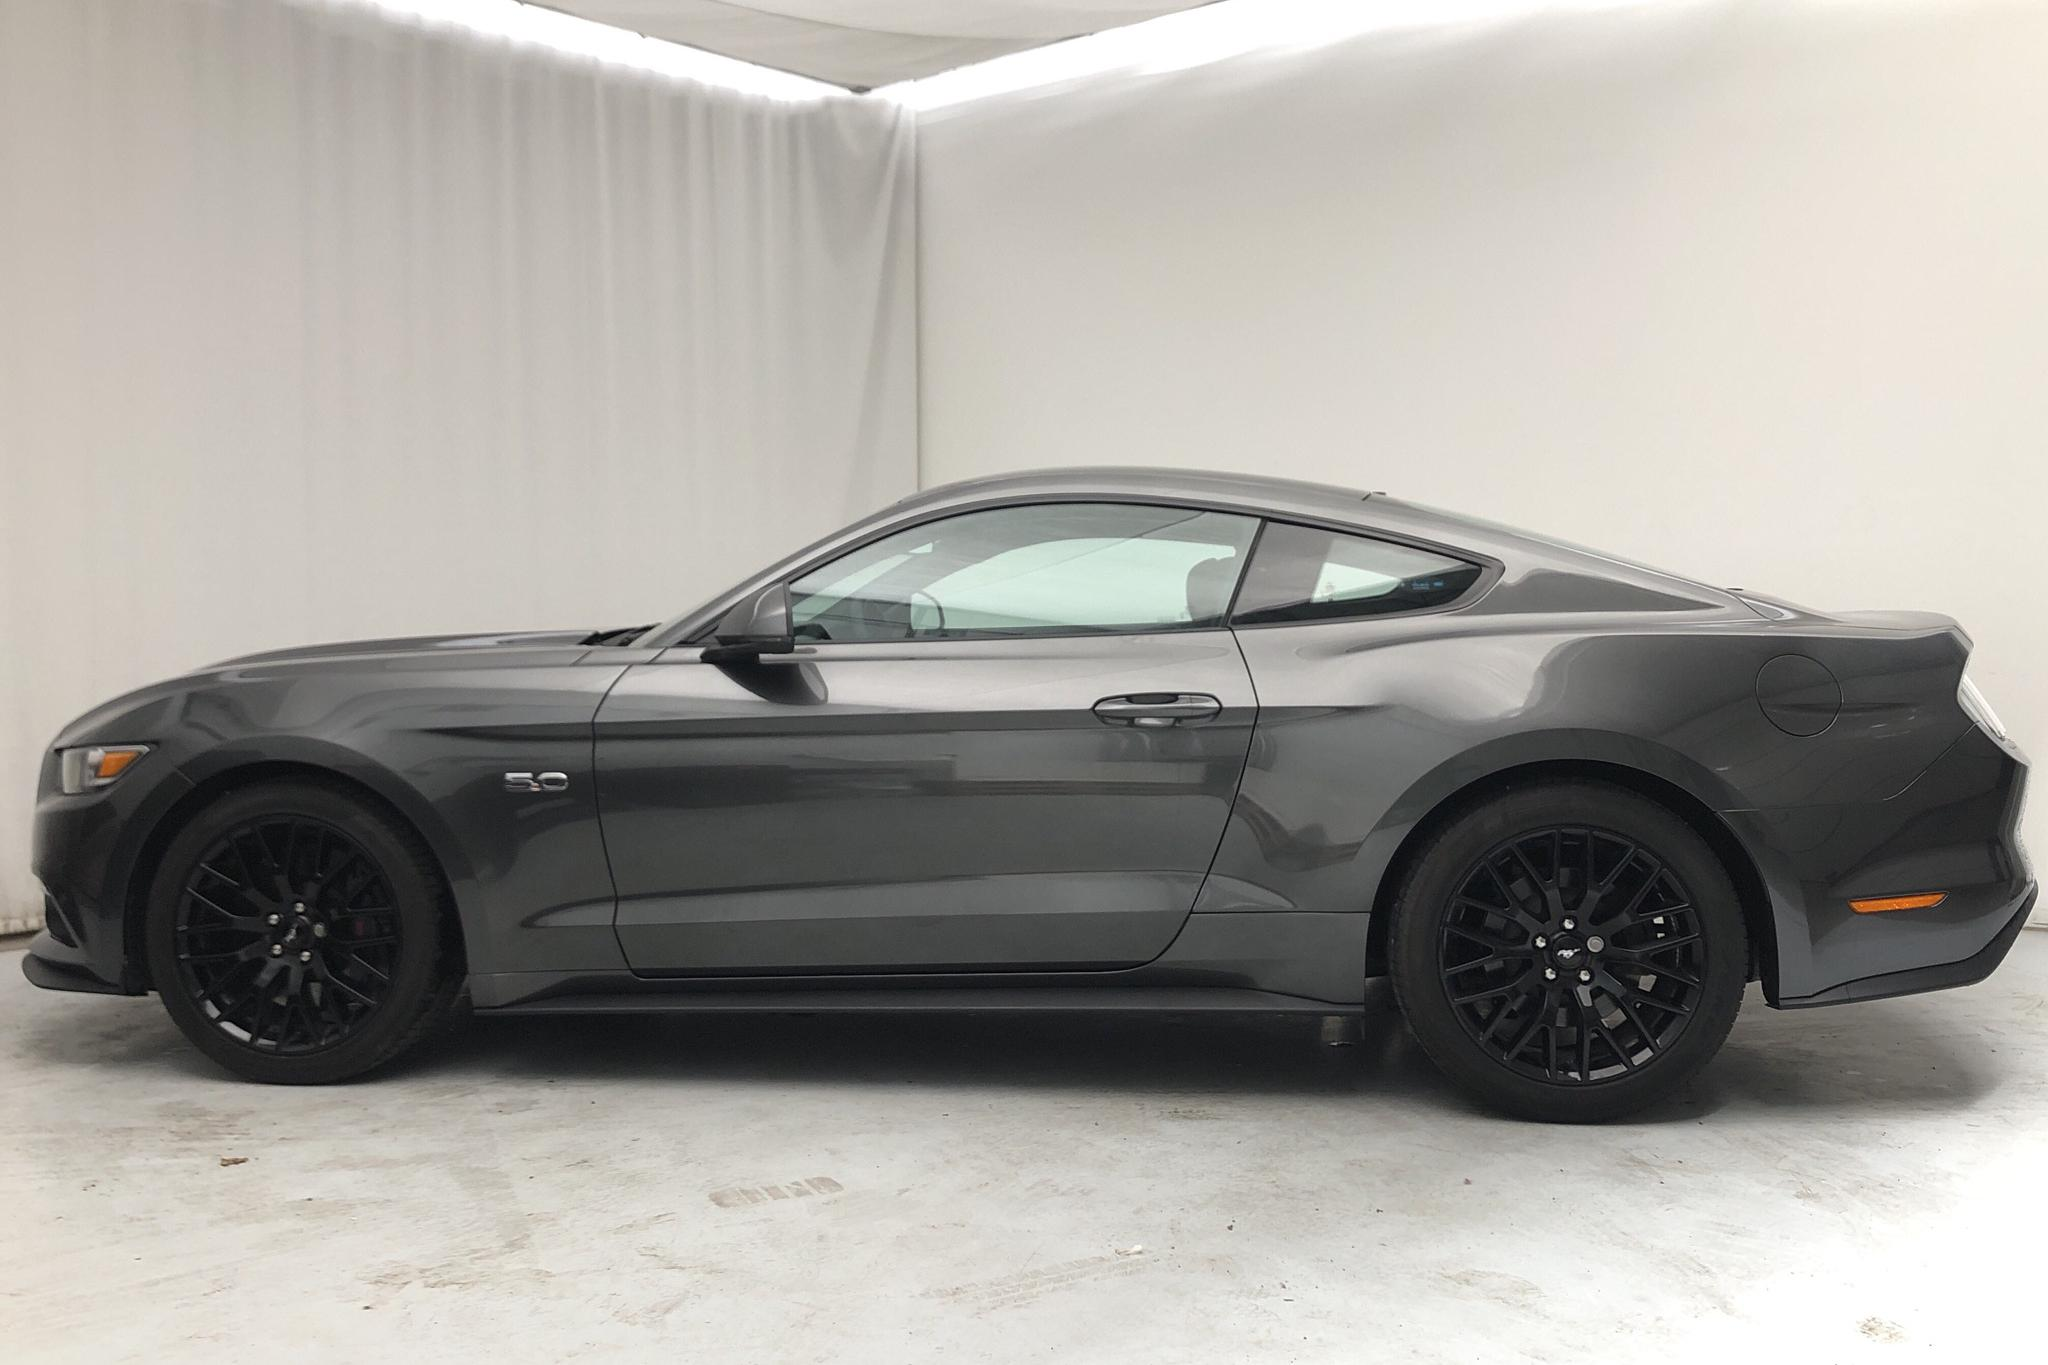 Ford Mustang GT V8 Fastback (418hk) - 18 260 km - Automatic - gray - 2015